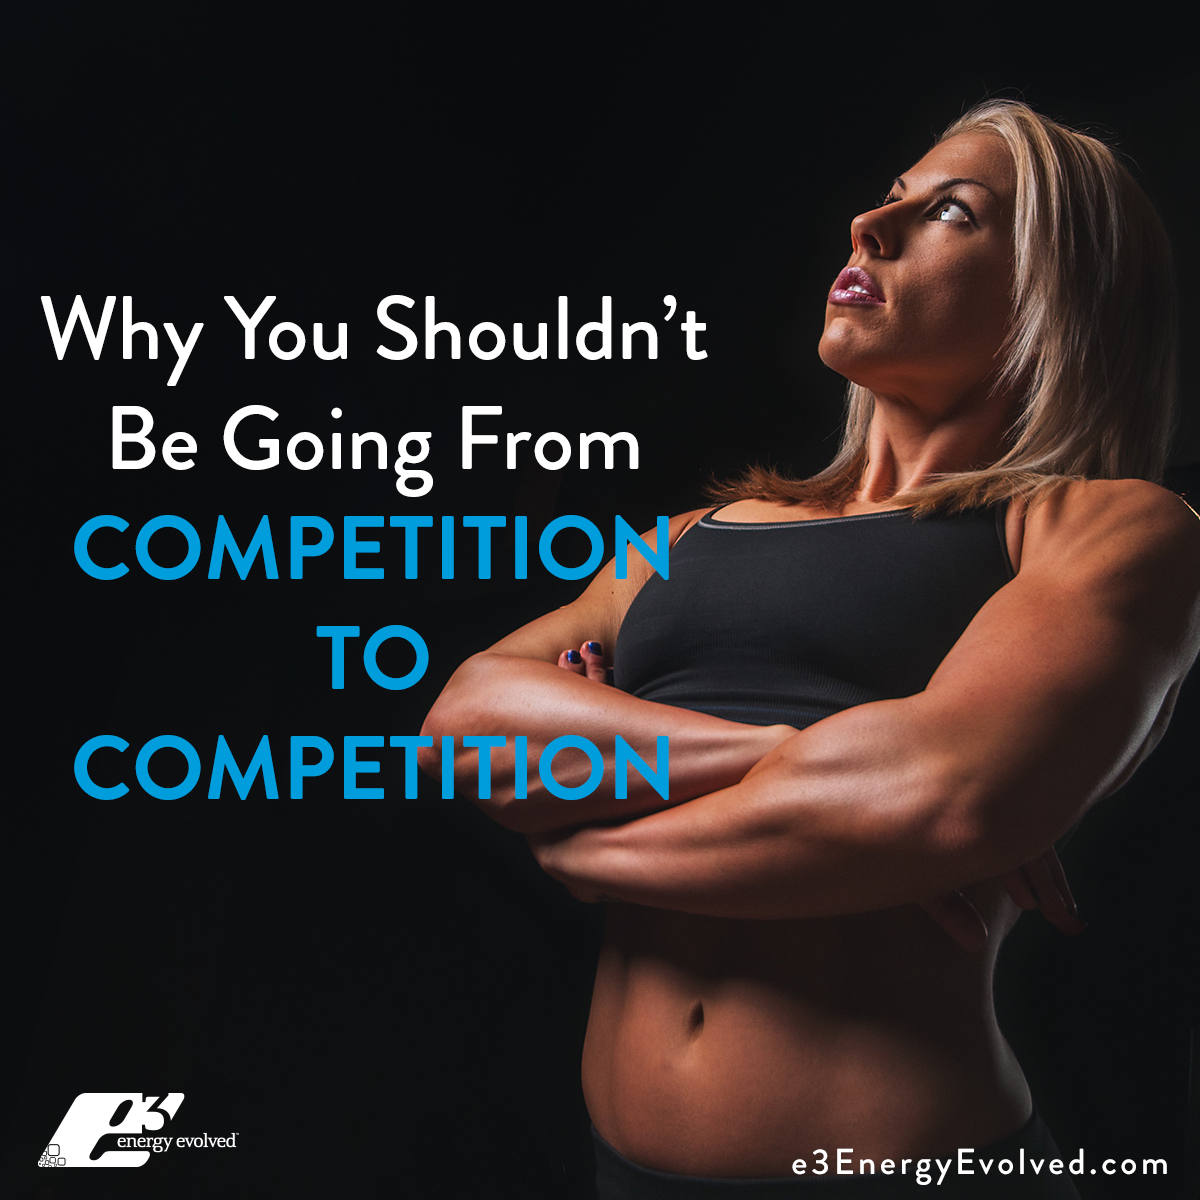 fitness, athlete, fitness athlete, fitness competitor, competition, figure competition, bodybuilding, natural bodybuilding, figure competitor, figure competition, women's health, female fitness, metabolic damage, metabolism, metabolic health, adrenal fatigue, digestive health, weight loss resistance